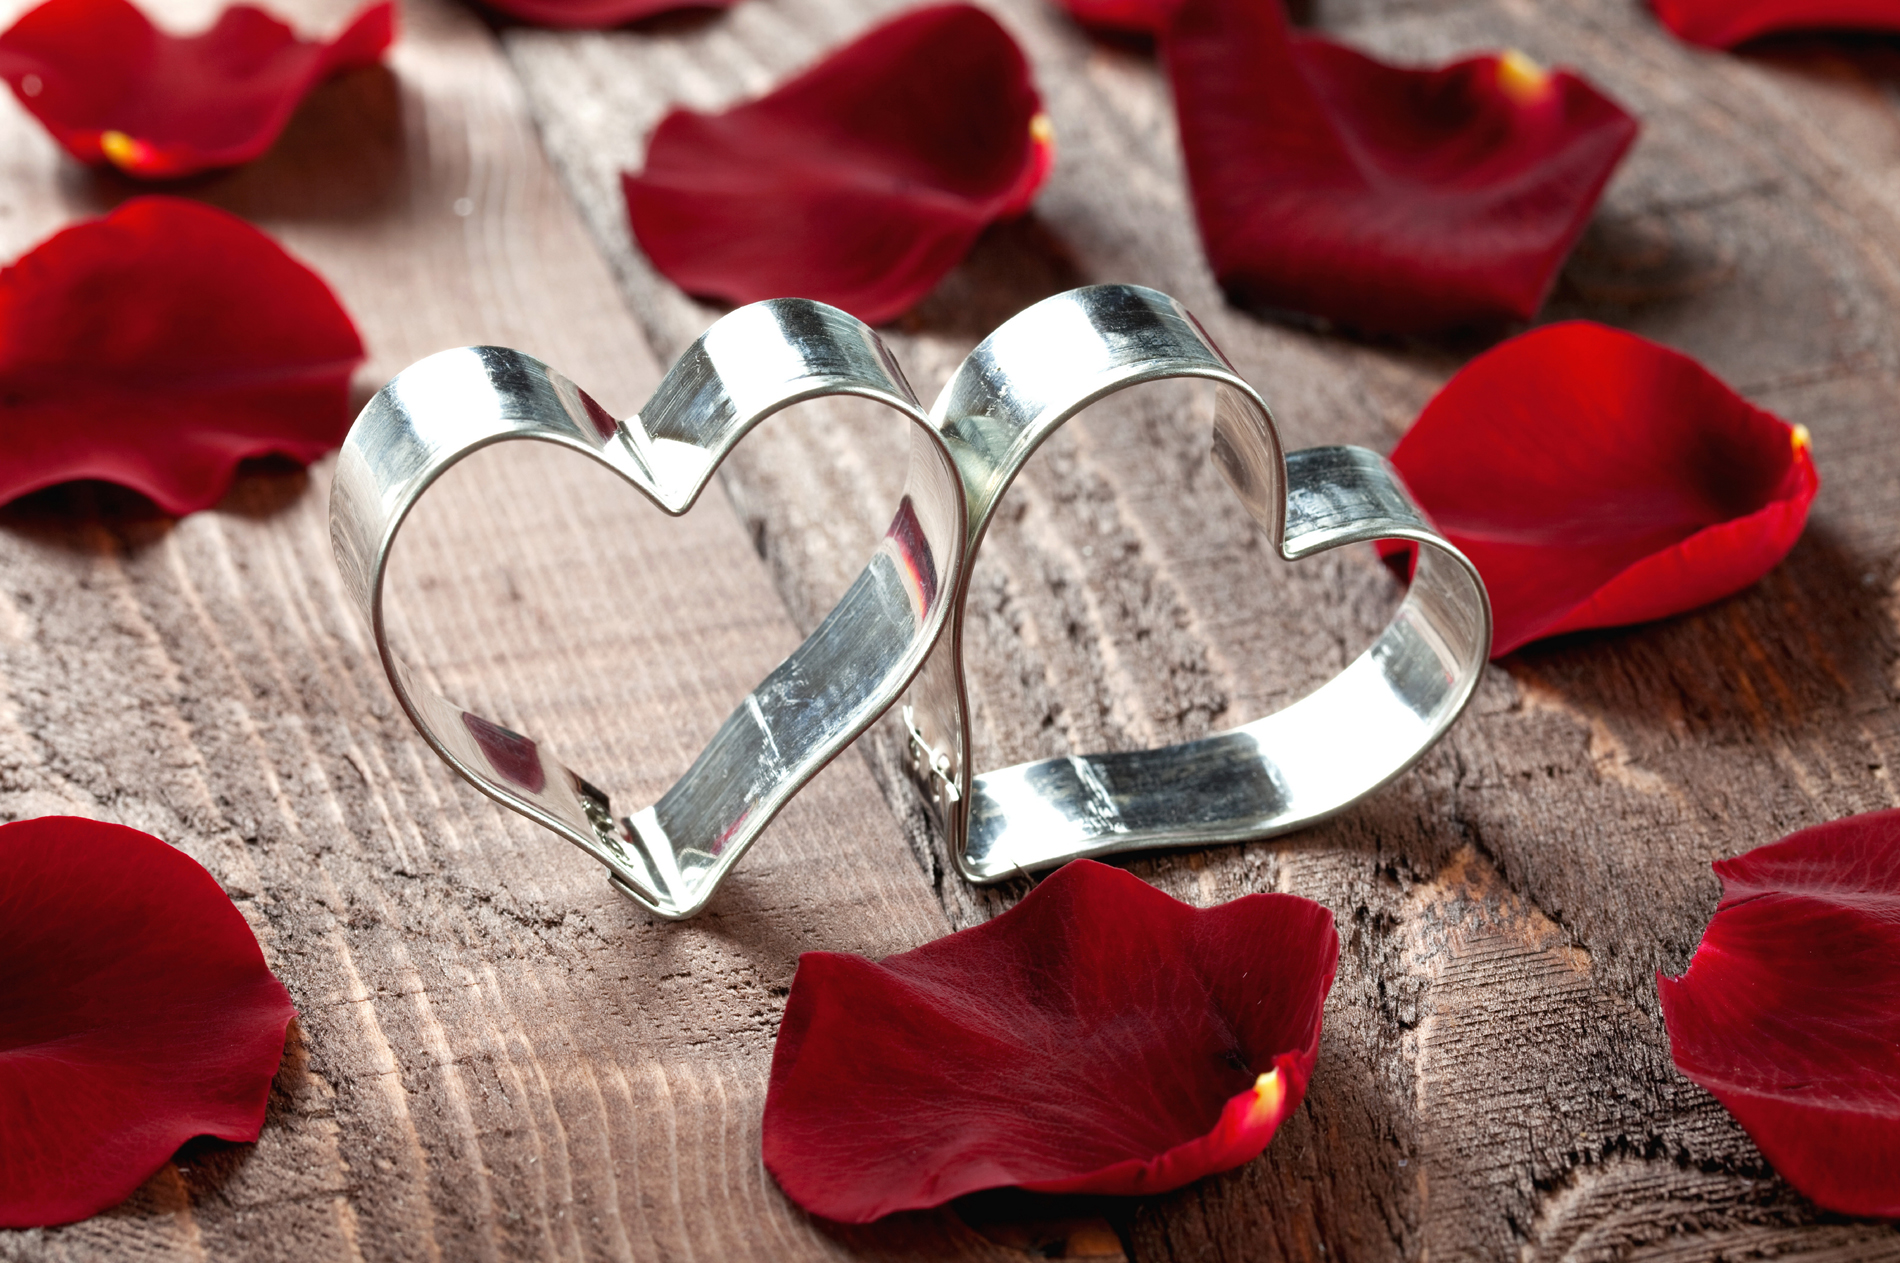 Rose petals with silver hearts 52854